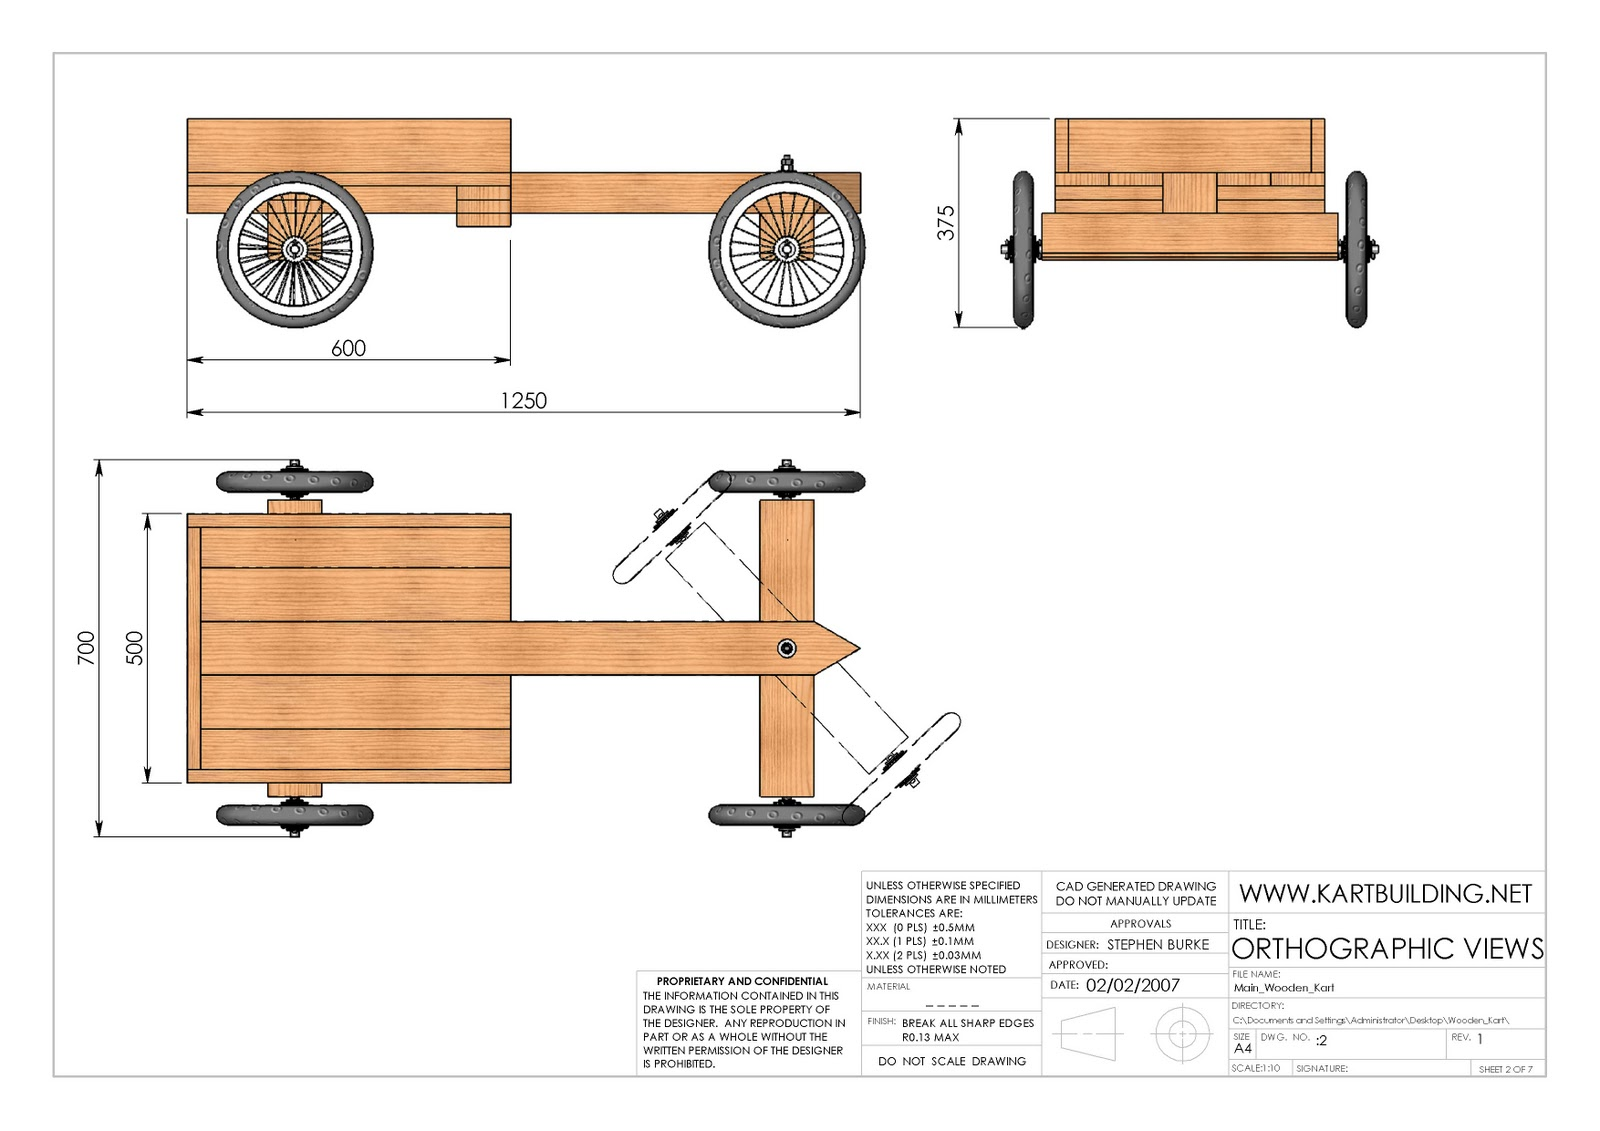 Woodworking wooden car plans PDF Free Download